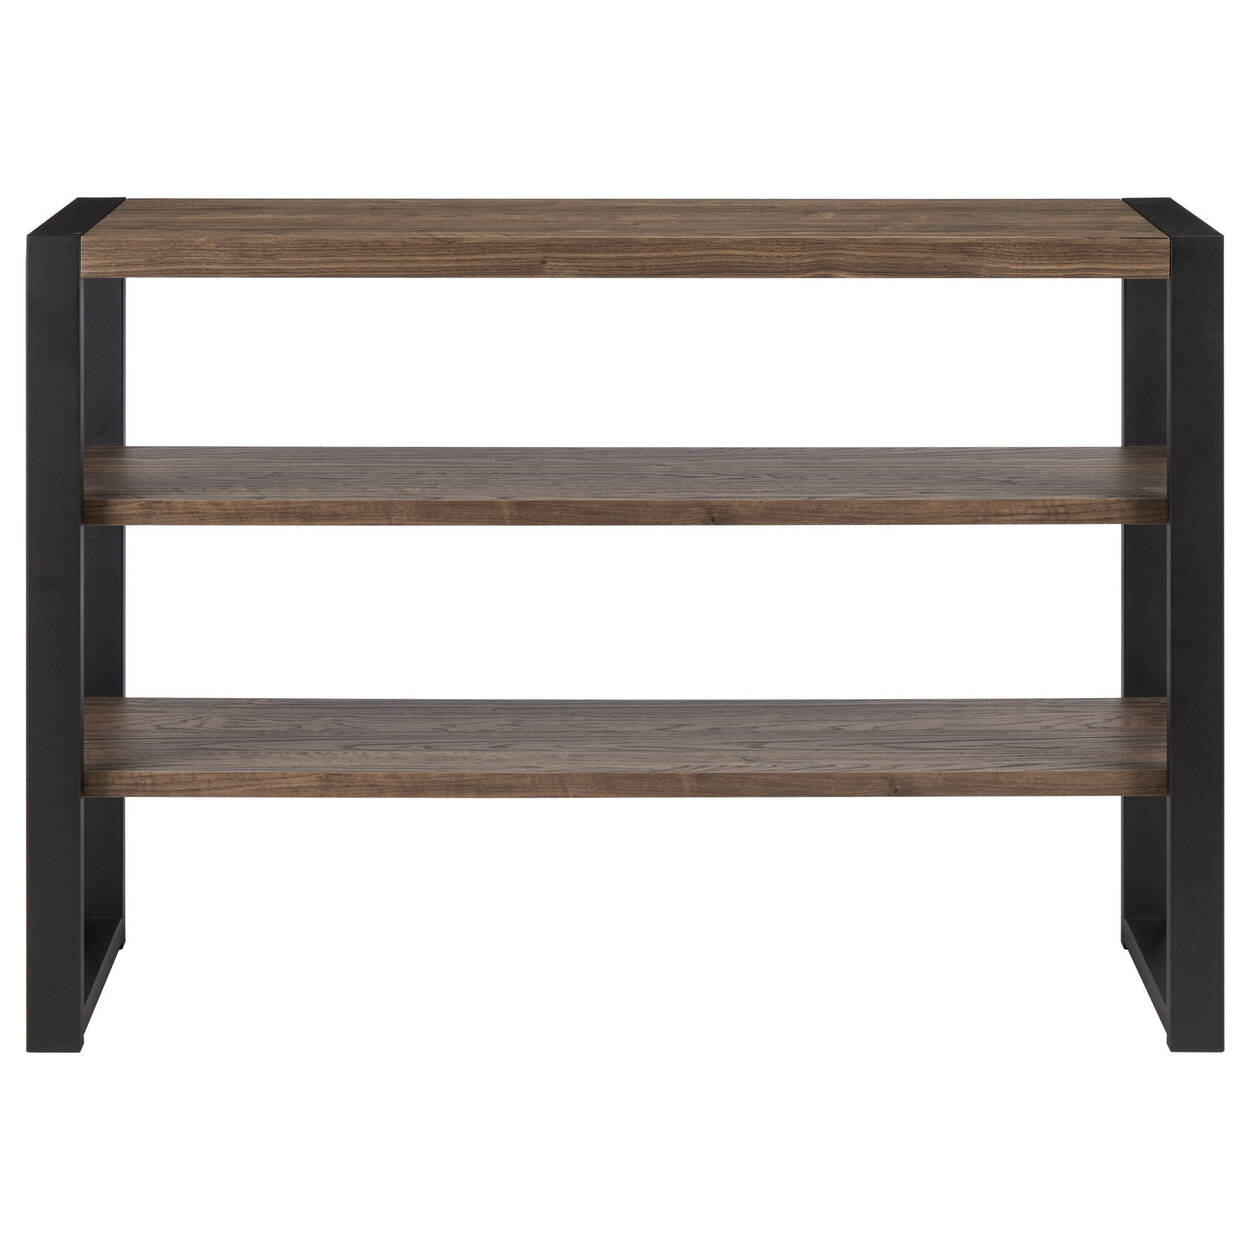 Three-Shelf Veneer and Iron Console Table